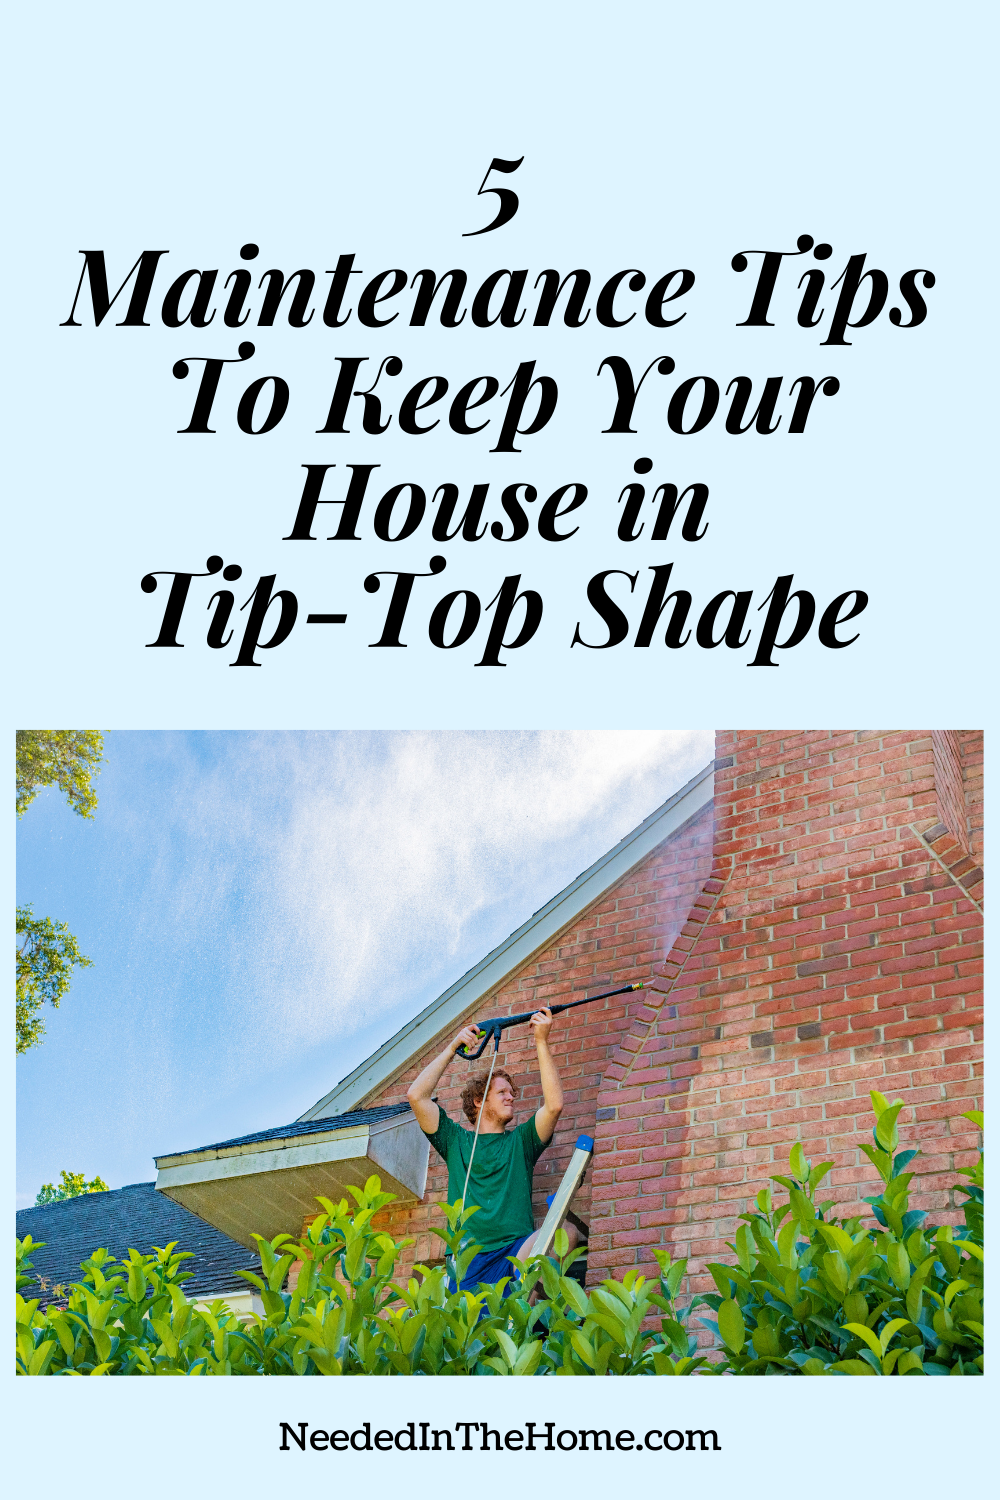 pinterest-pin-description 5 Maintenance Tips to Keep Your House In Tip-Top Shape man power washing house neededinthehome